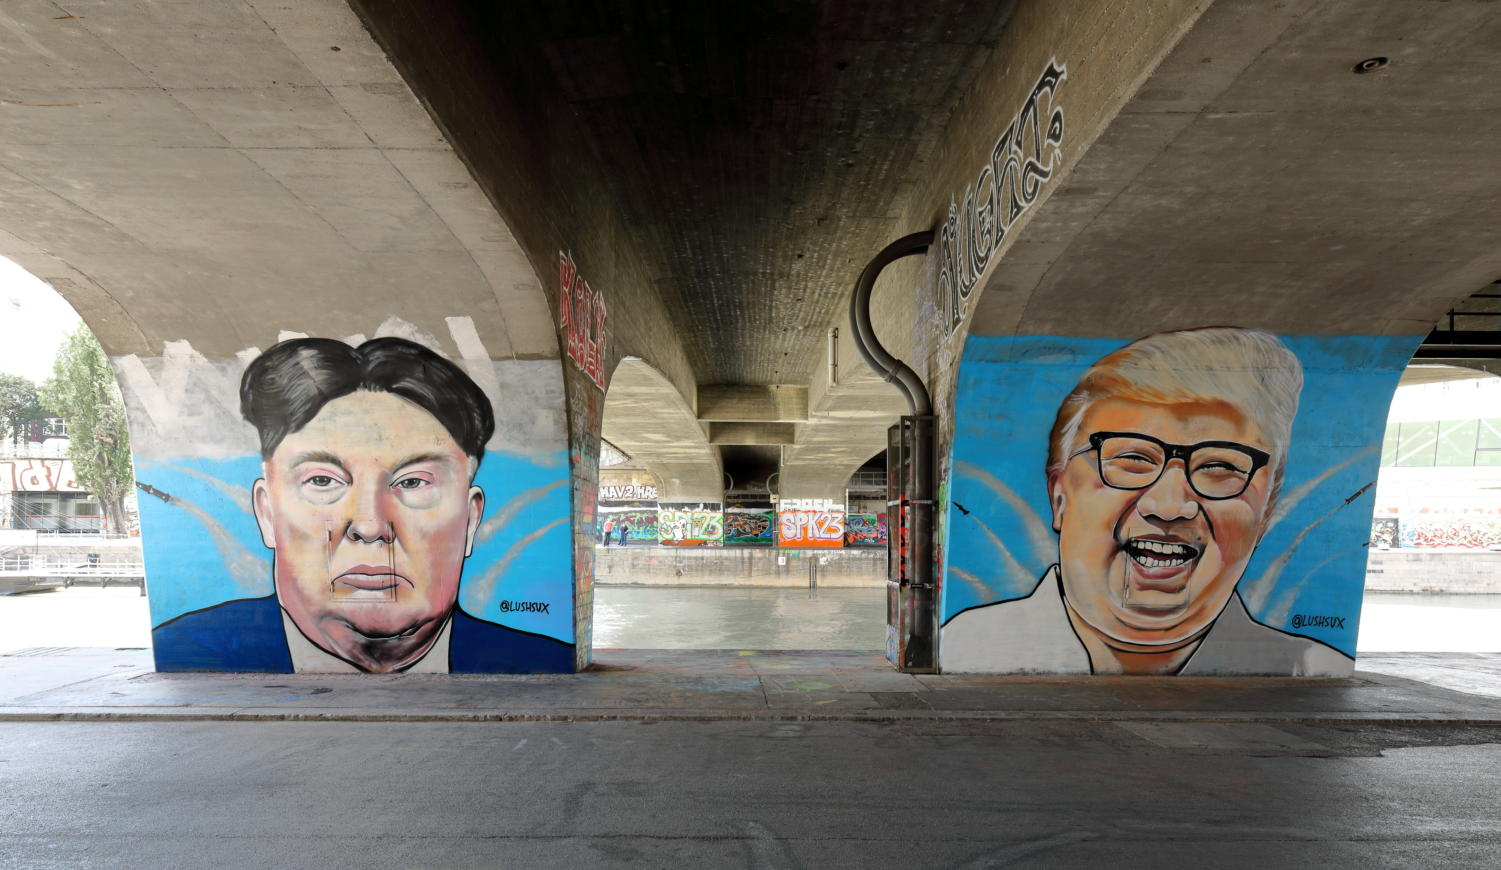 Graffiti of Kim Jong Un and Trump serves as political commentary.